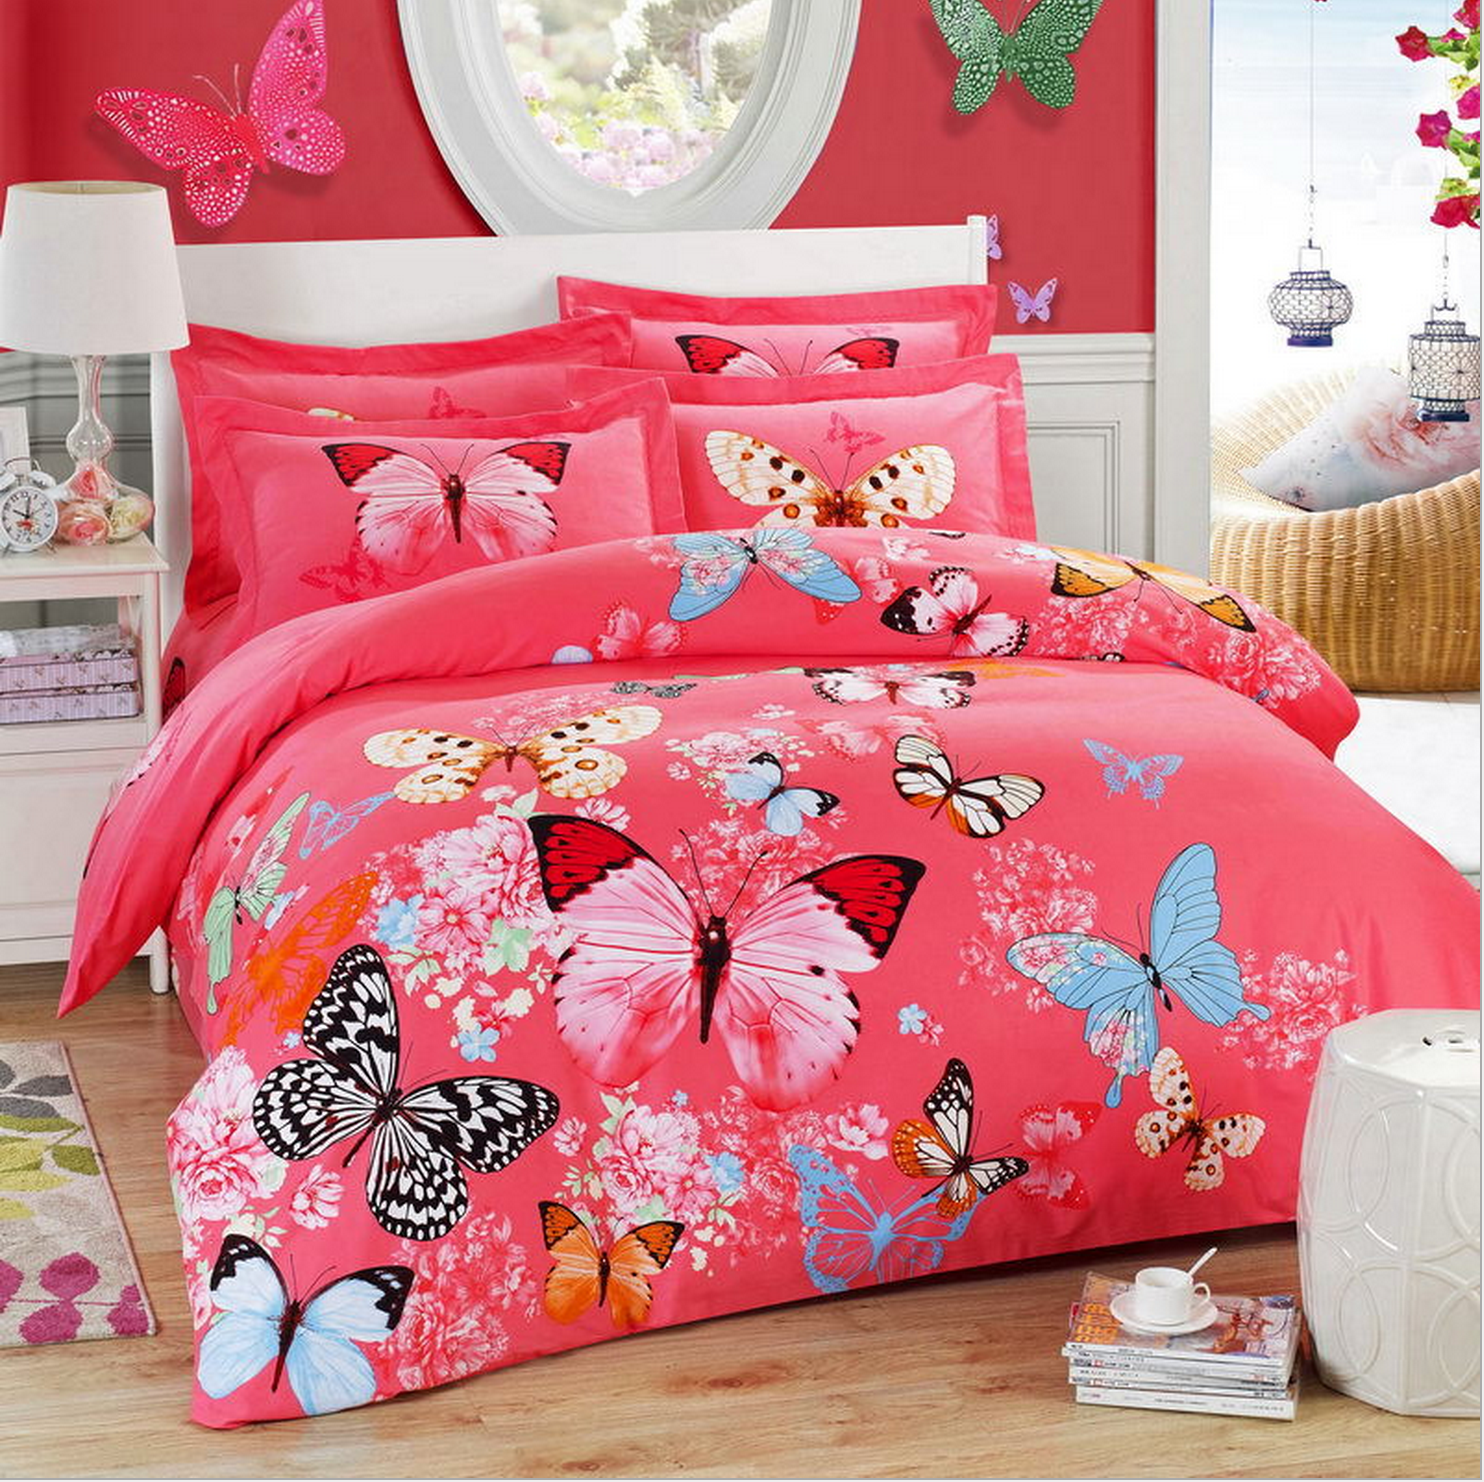 Luxury bedding set with flowers red with butterflies for Articulos decoracion casa